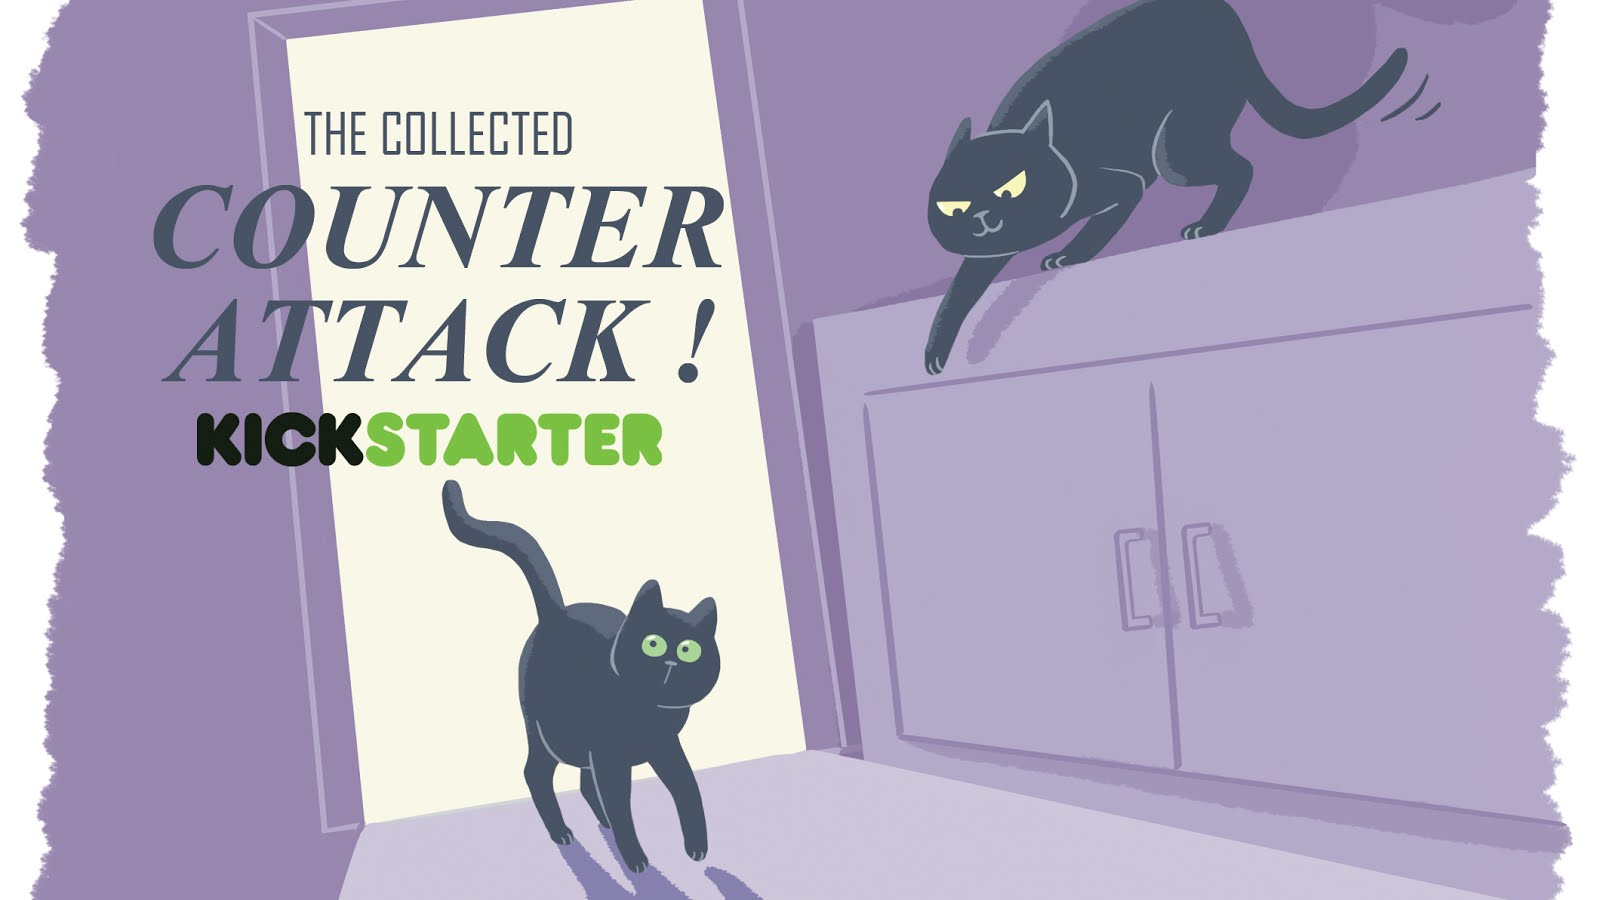 The Collected Counter Attack!